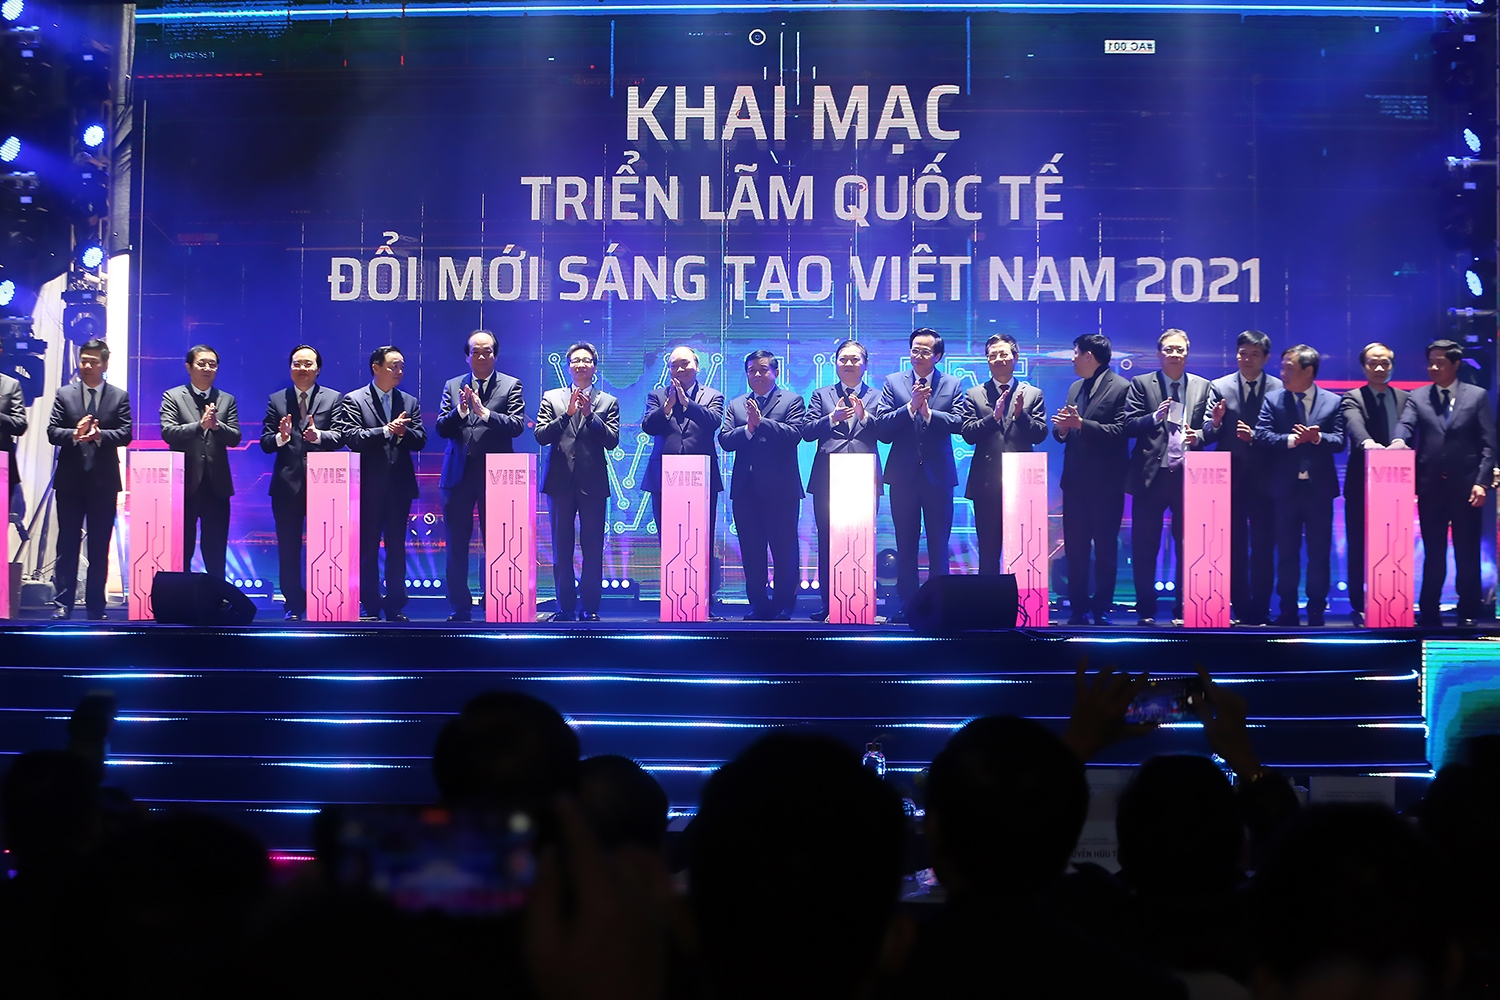 Vietnam News Today (January 10): Viet Nam urges U.S. to carry out fair and transparent investigation into monetary policy